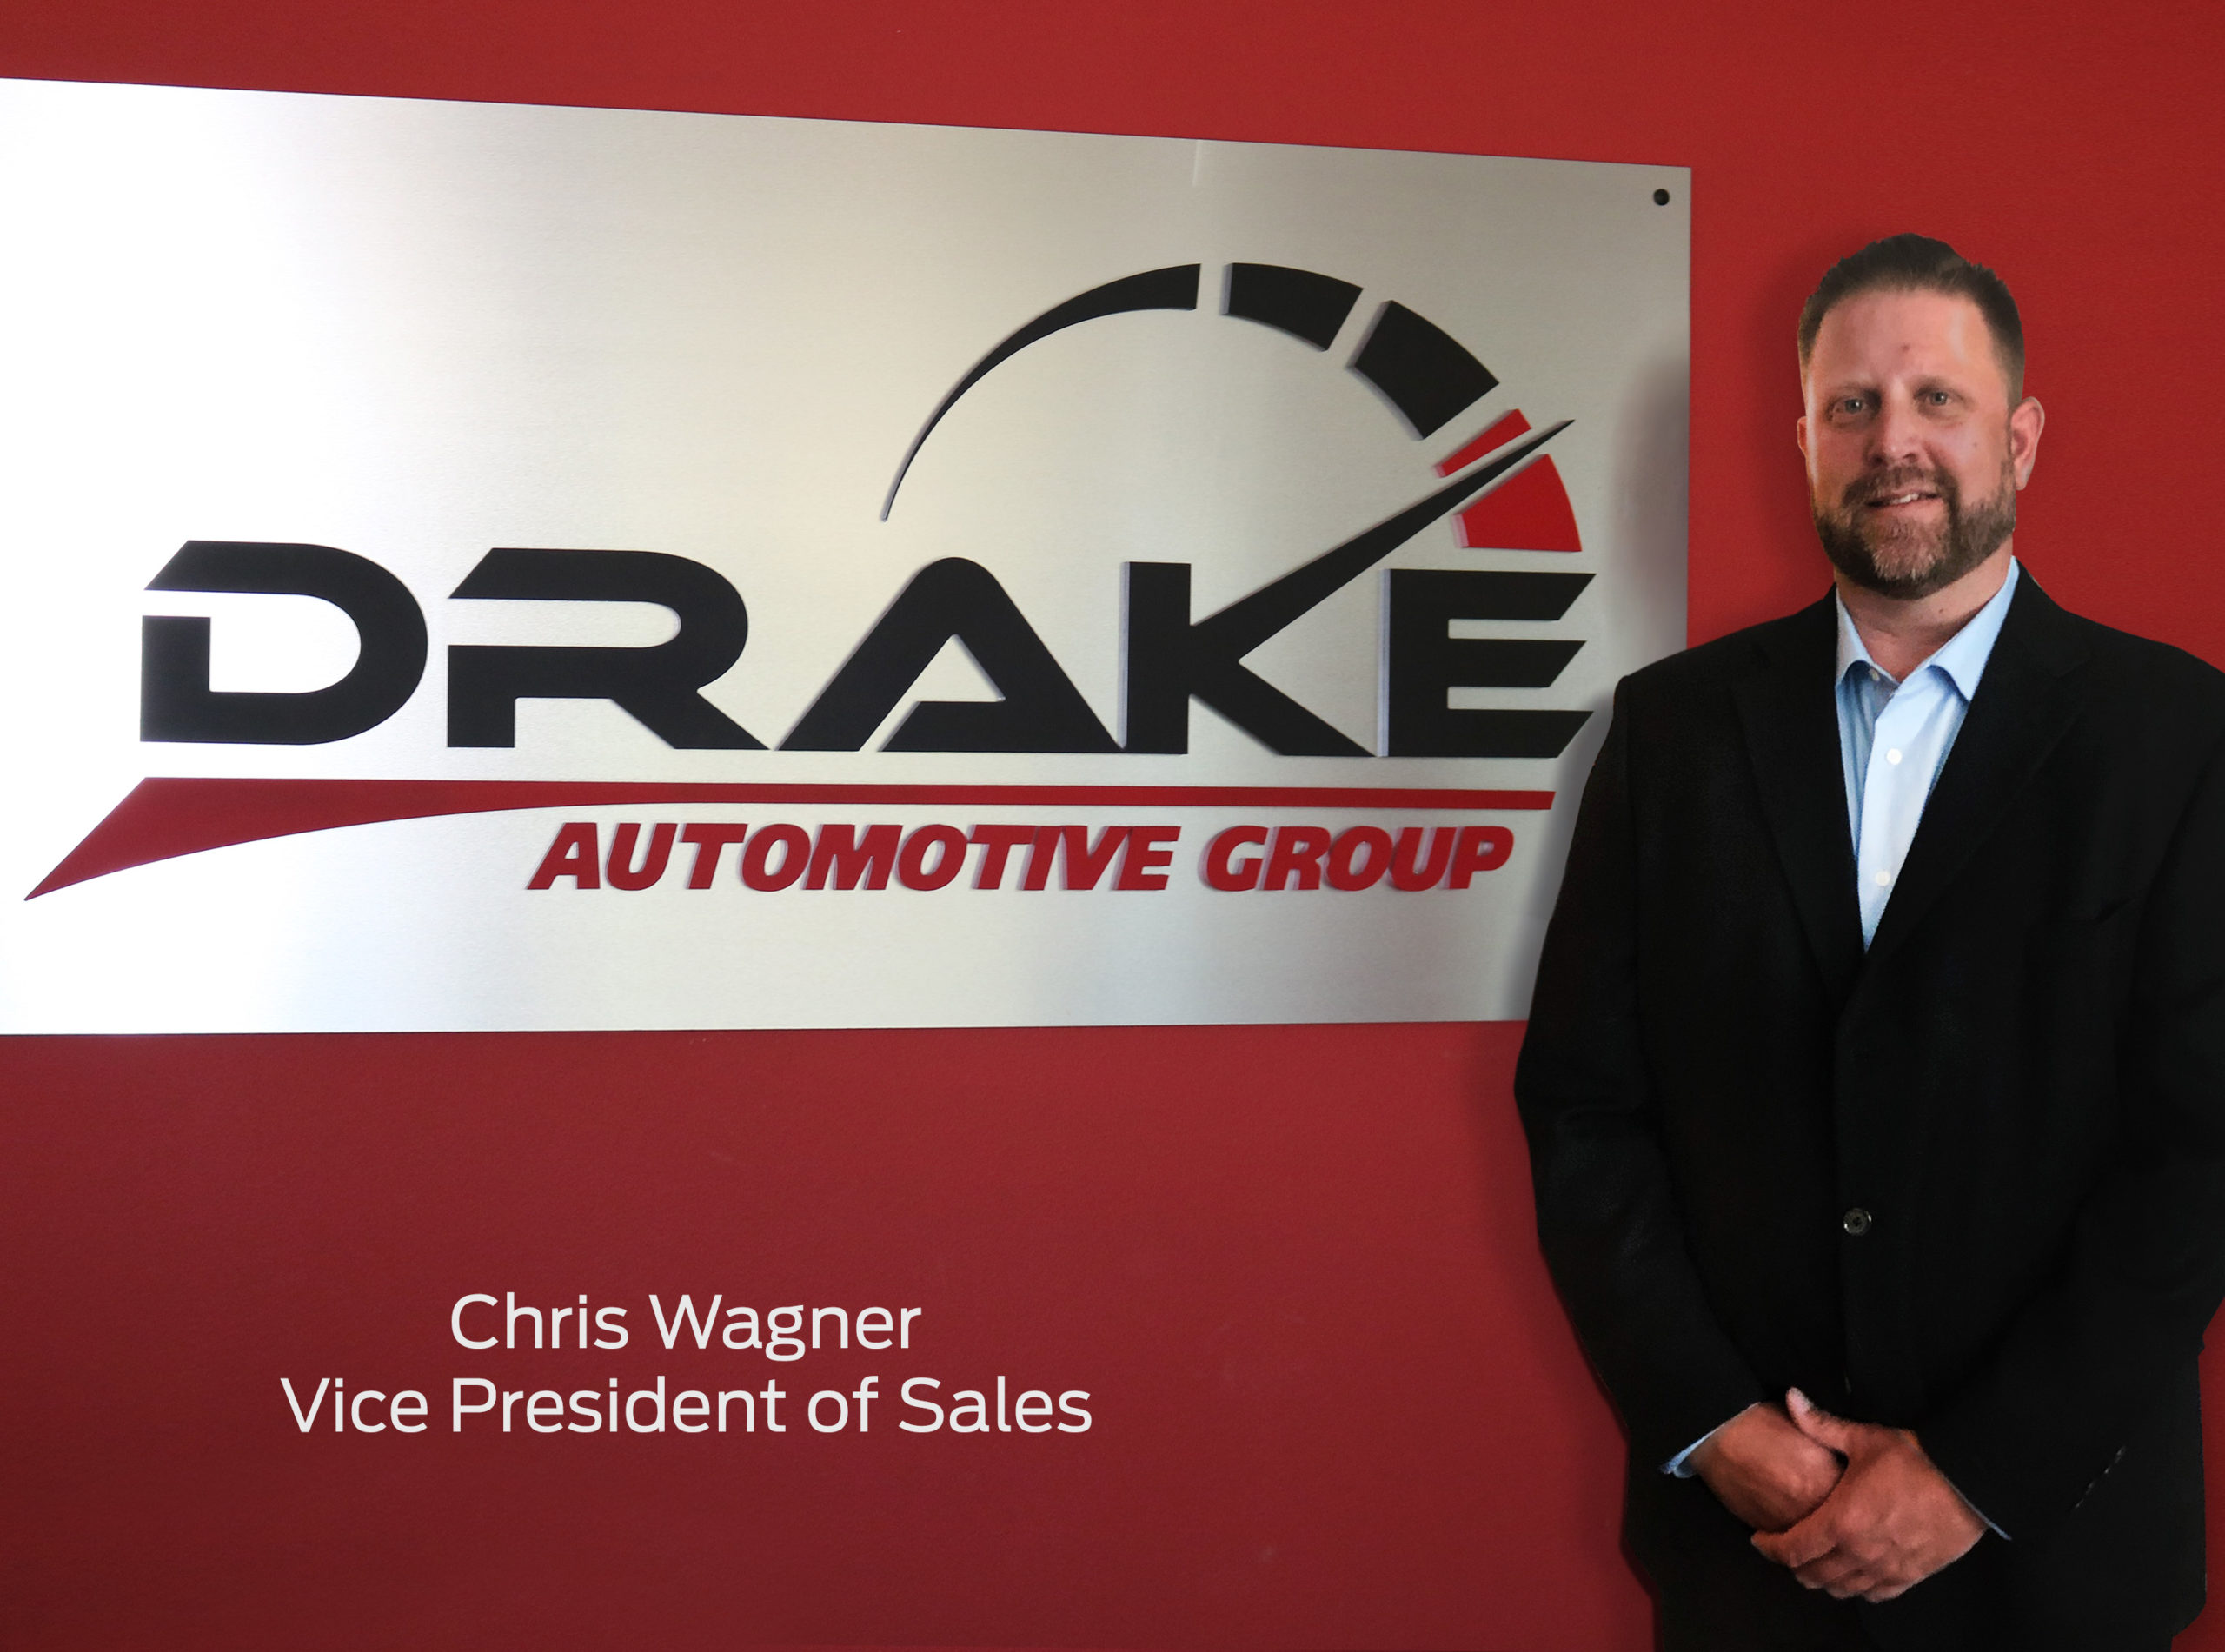 Chris Wagner - Vice President of Sales